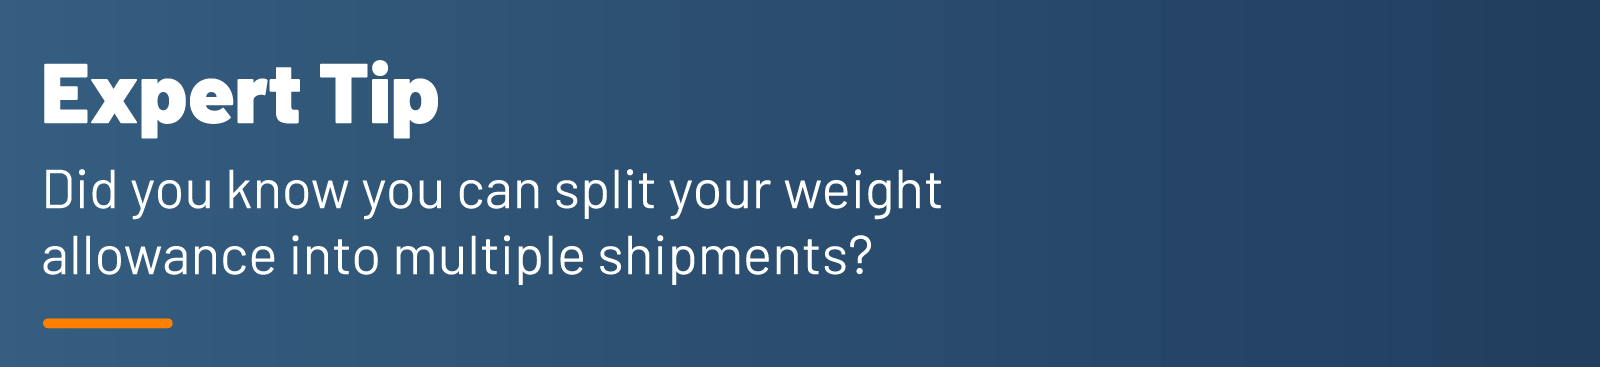 Expert Tip - Did you know you can split your weight allowance into multiple shipments?